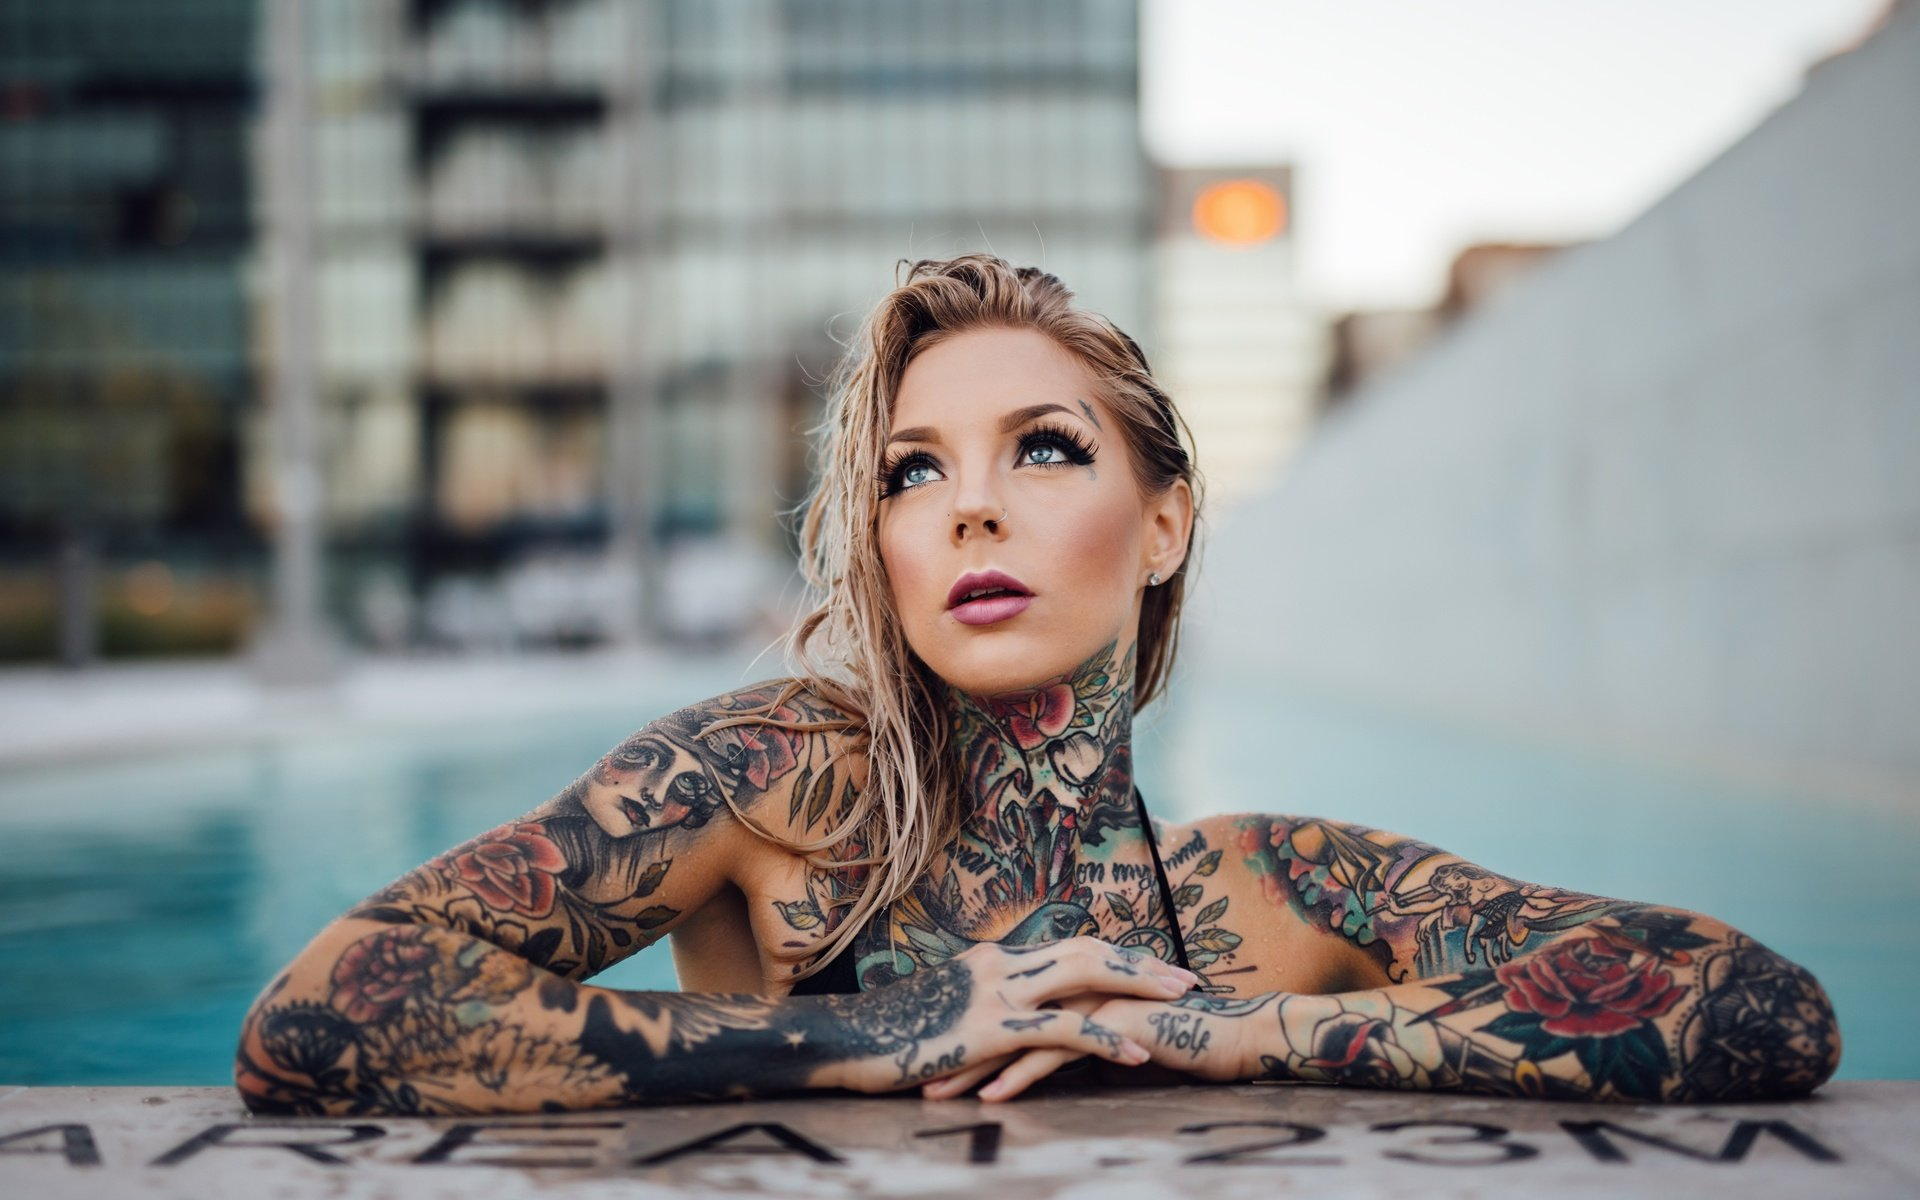 Sexy Tattooed Women Stock Photos and Pictures Getty Images Pictures of beautiful tattooed women